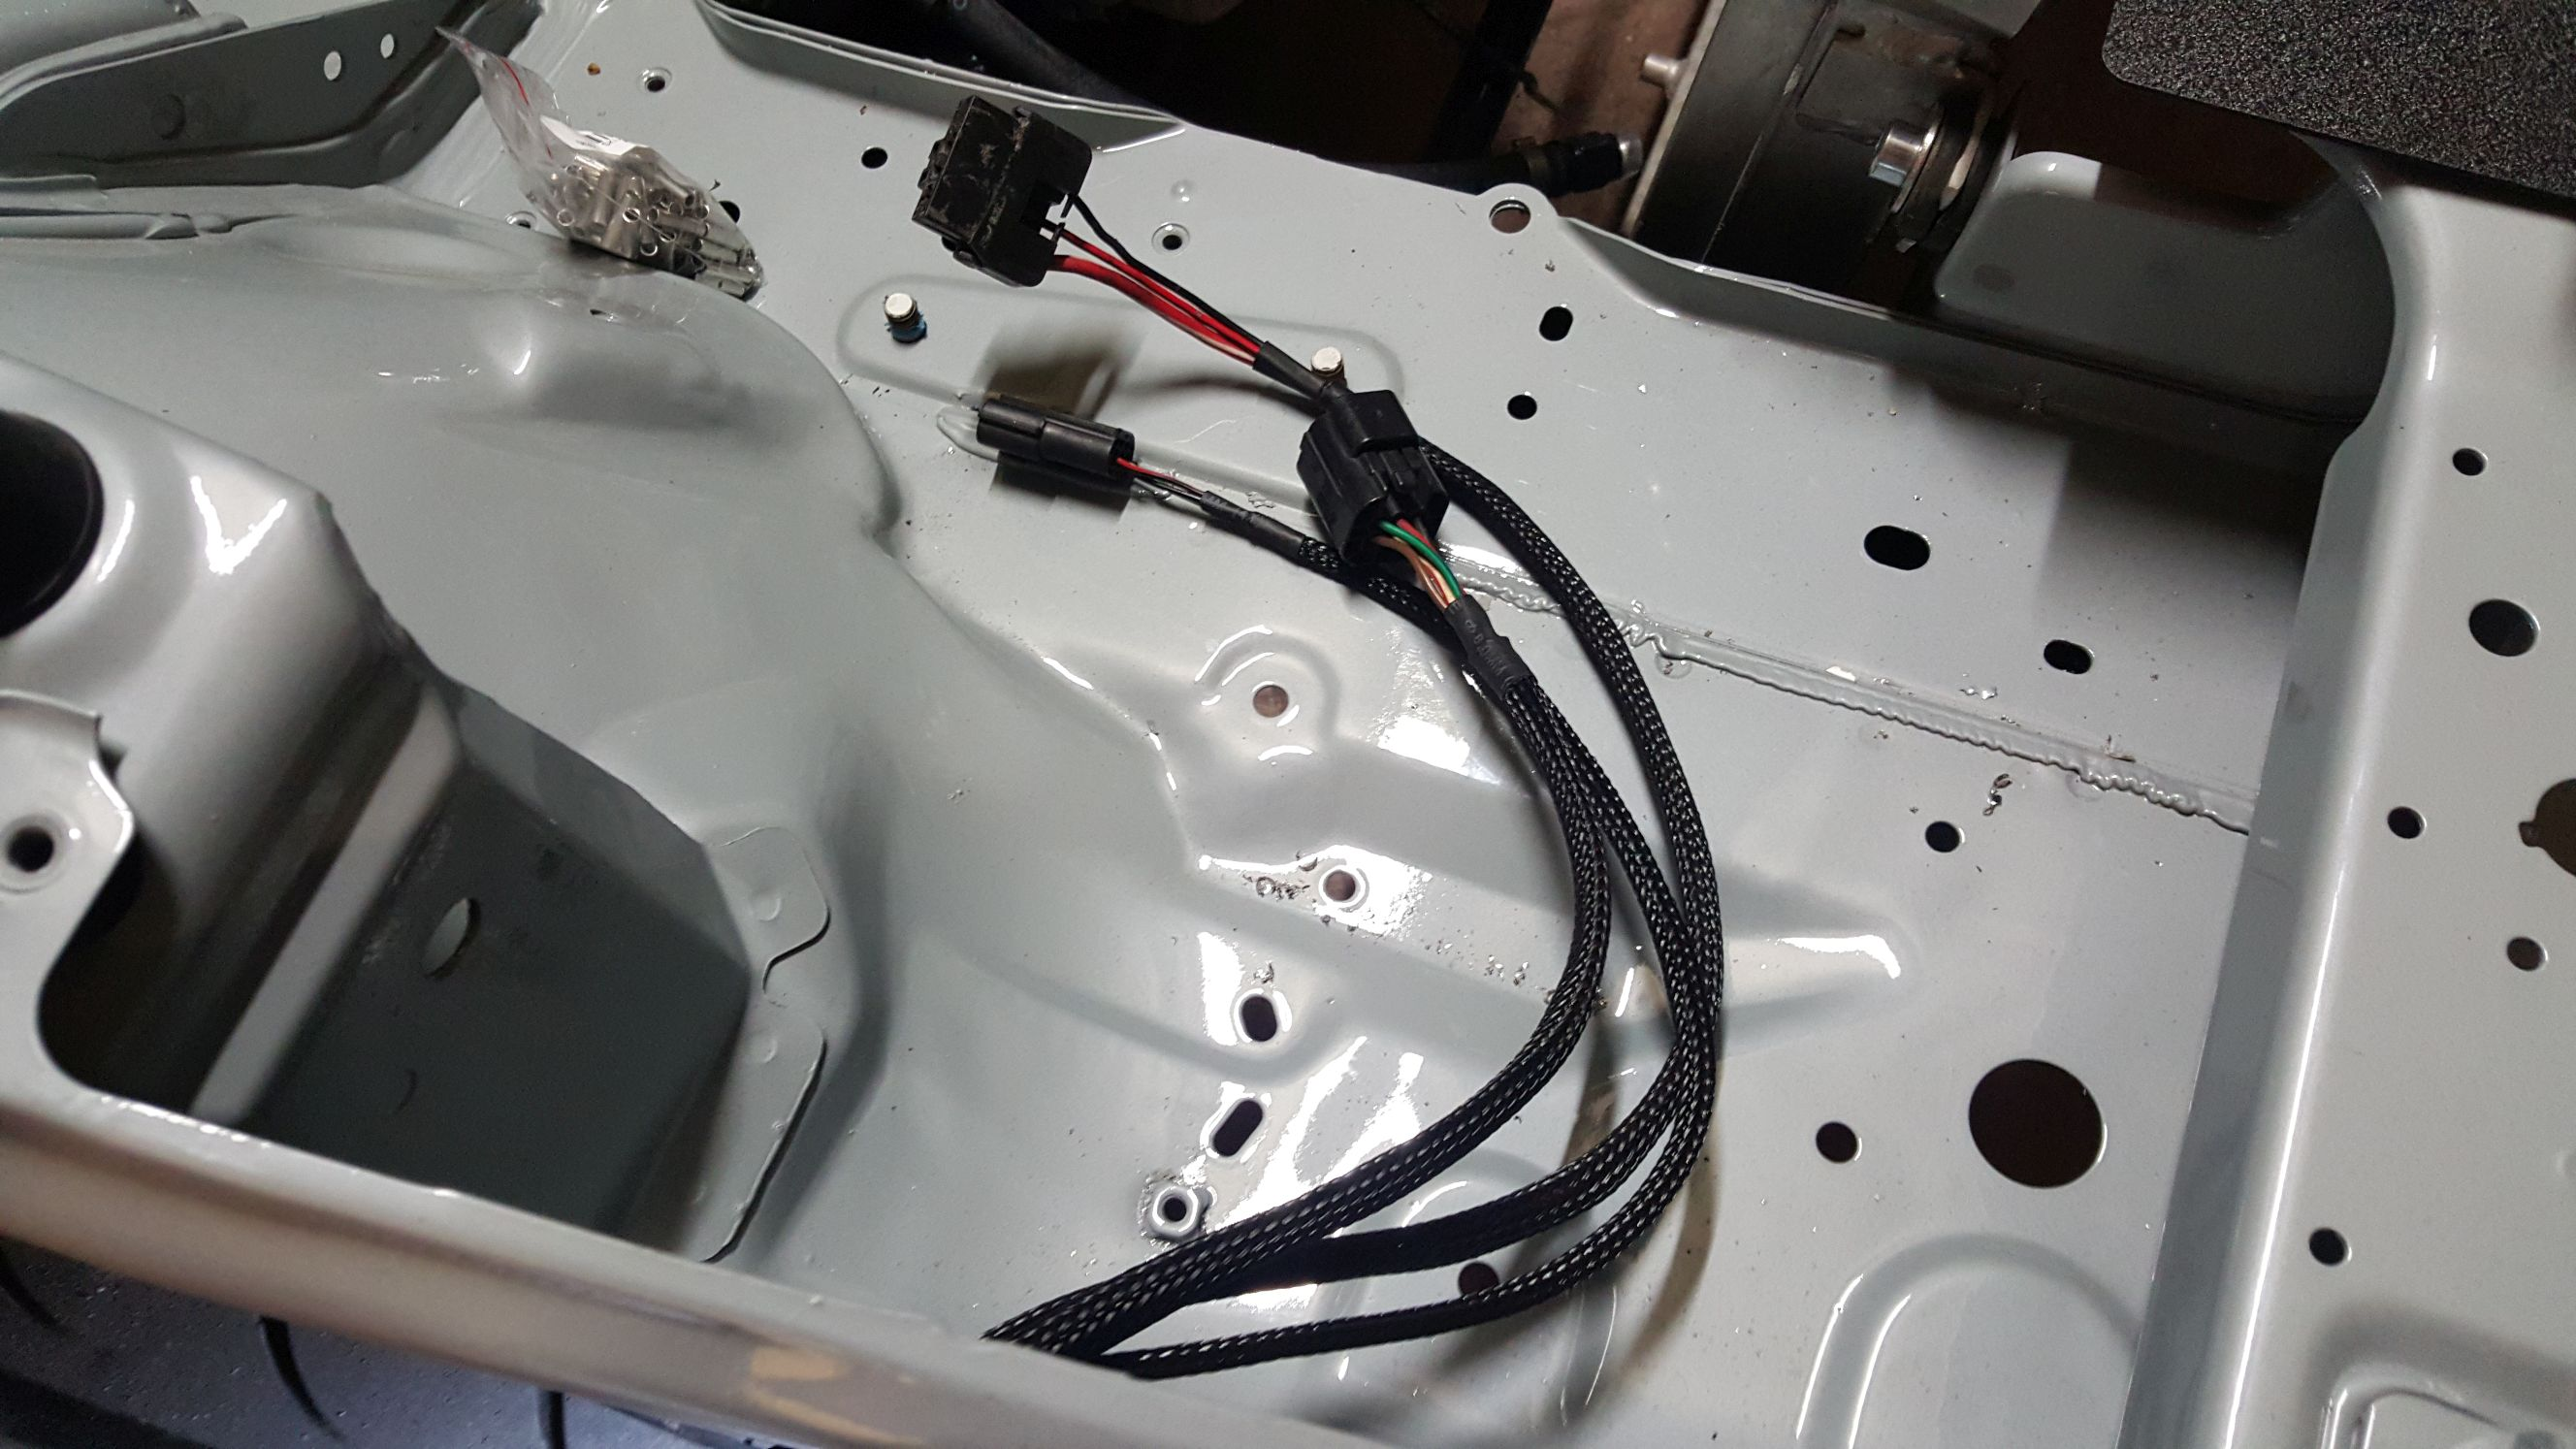 Lots Of Photos Wire Tuck Omgpham Exposed Wiring Harness The Headlight Assemblies Back In Most Wires Are Out Sight